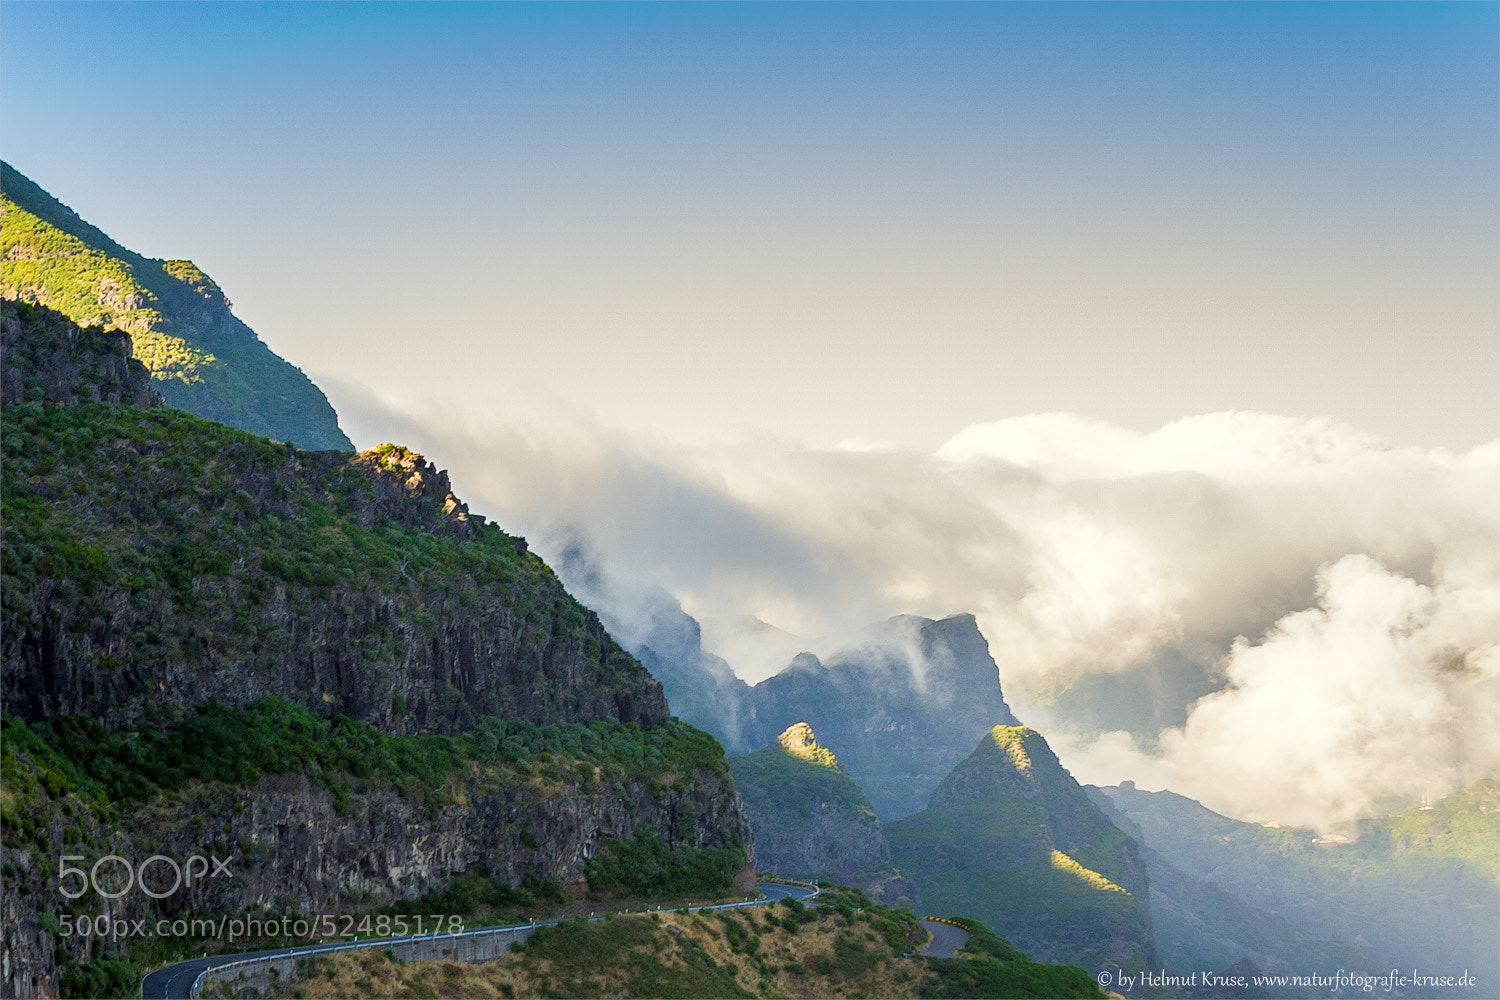 Photograph Fall of clouds by Helmut Kruse on 500px